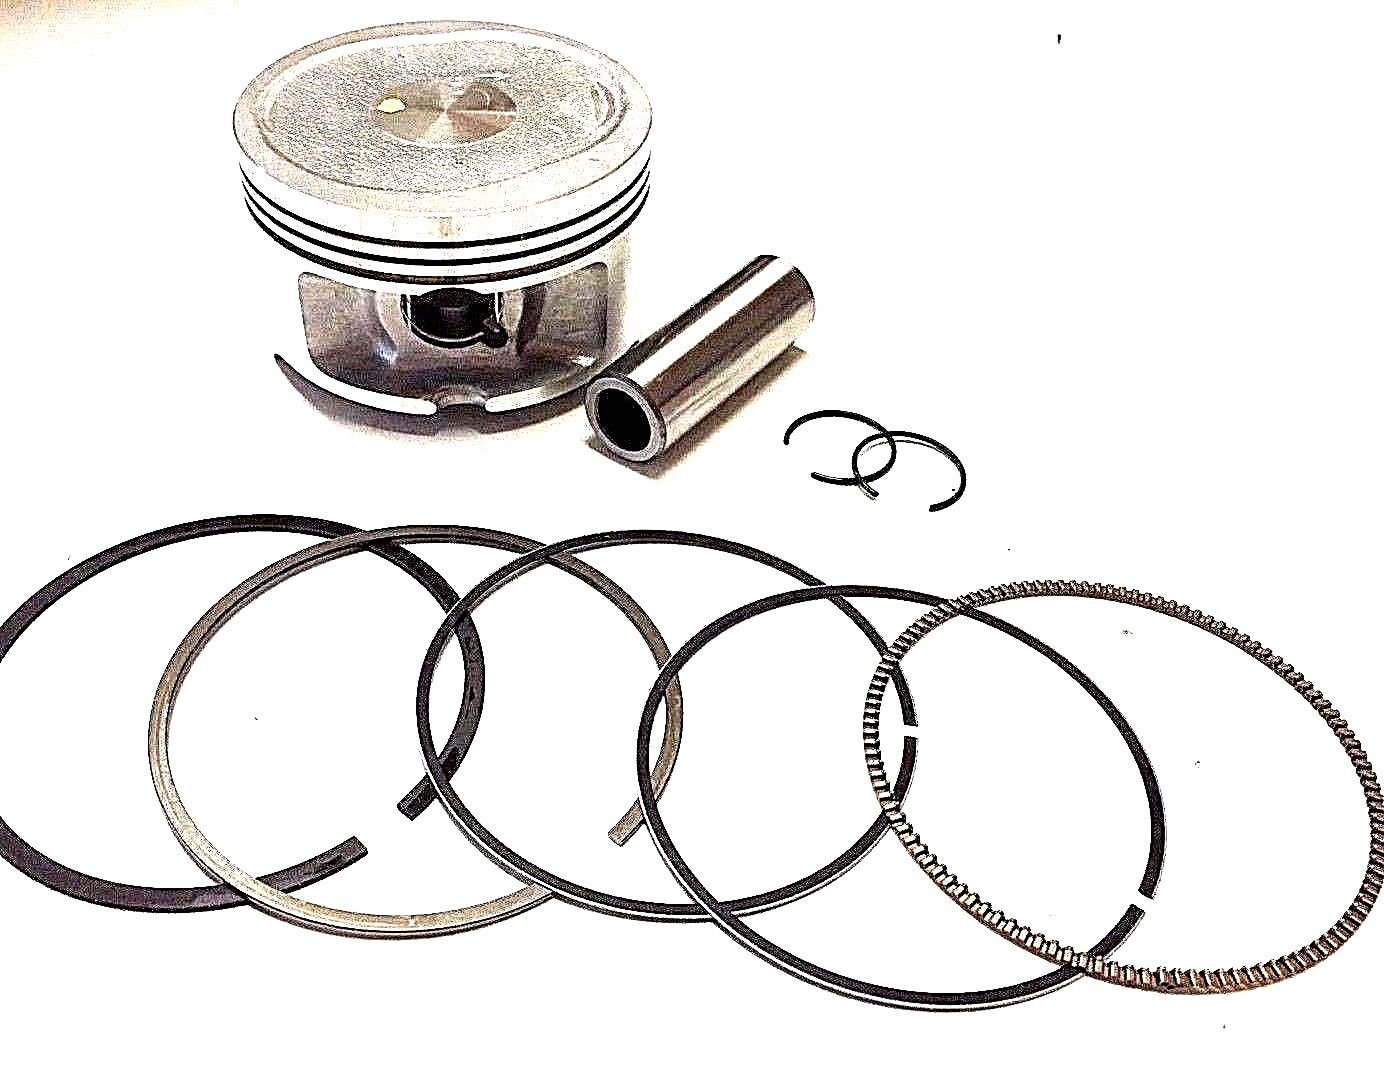 70mm Piston And Rings Set 250cc 260cc Linhai Tank Roketa Mc-54B Vog Scooter Super Motor Parts